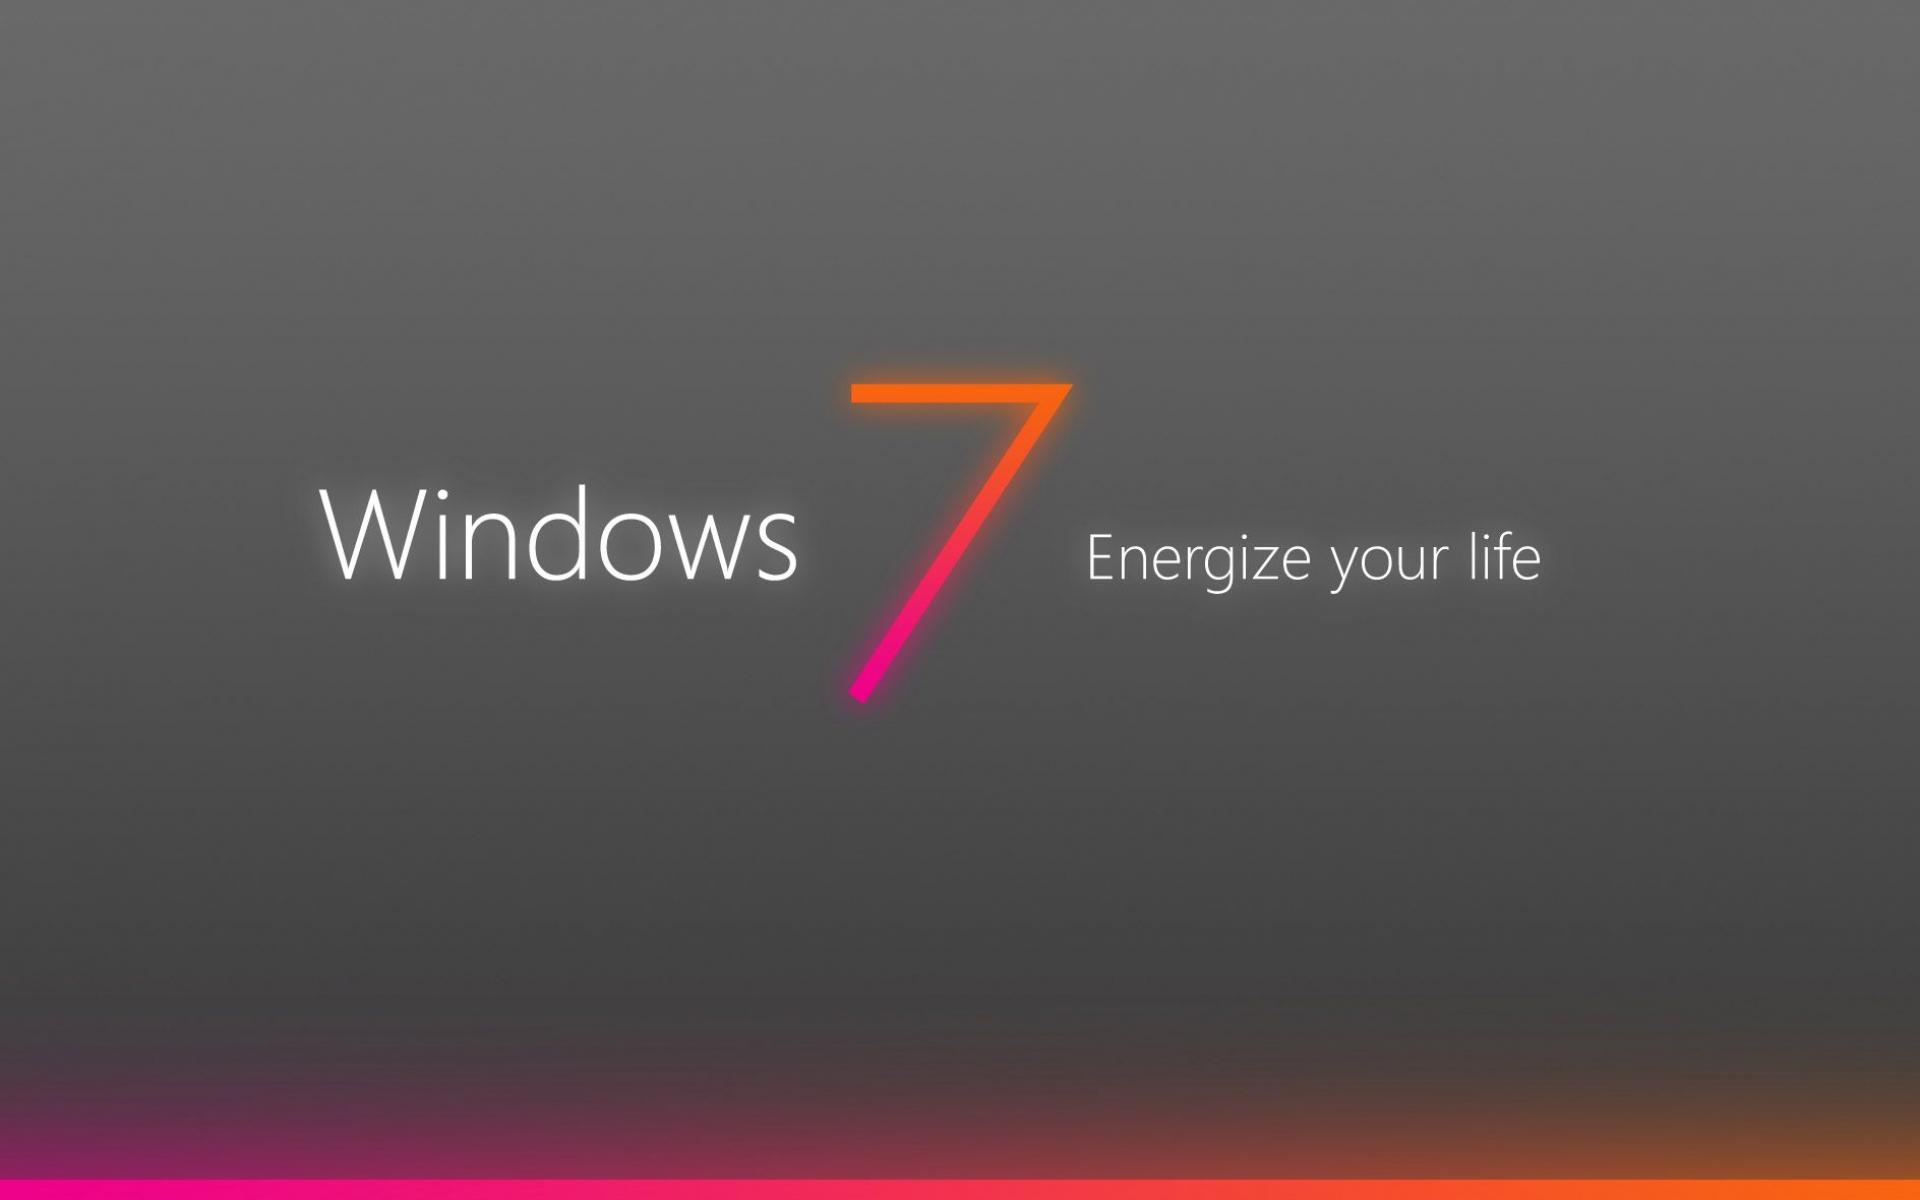 Обои Windows 7 1920x1200